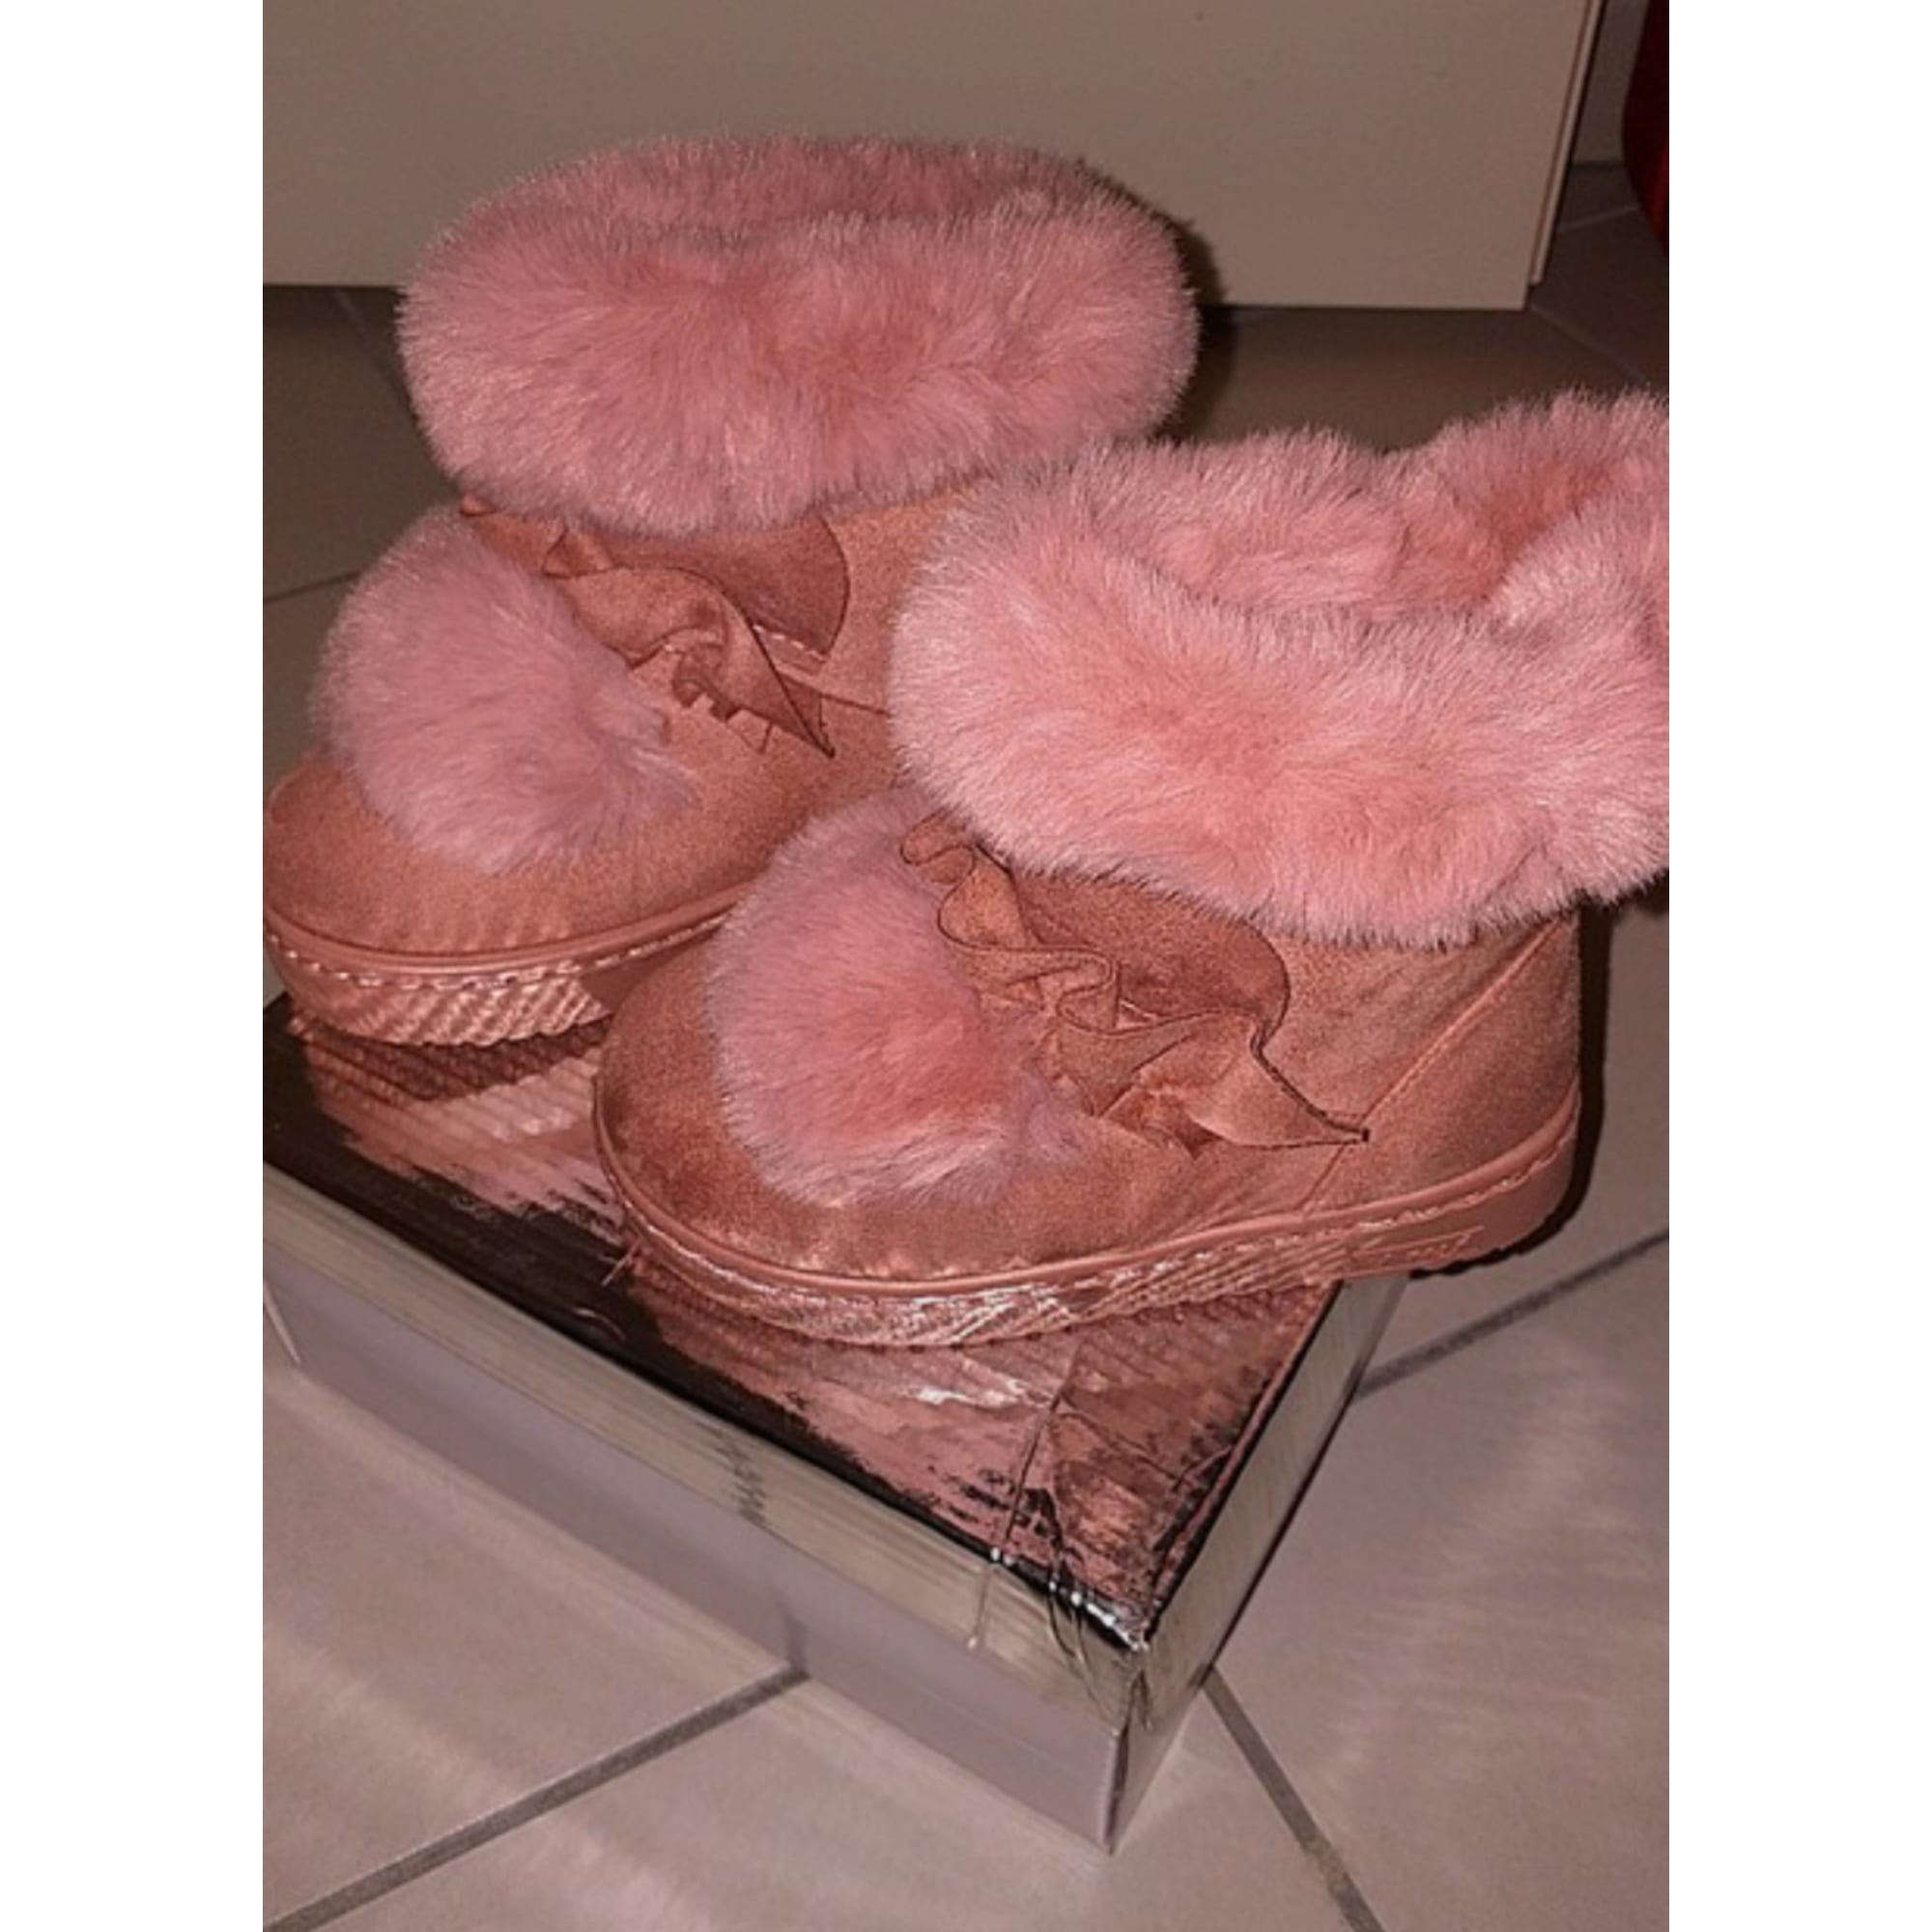 Bottes LEEA KID'S synthétique rose 25